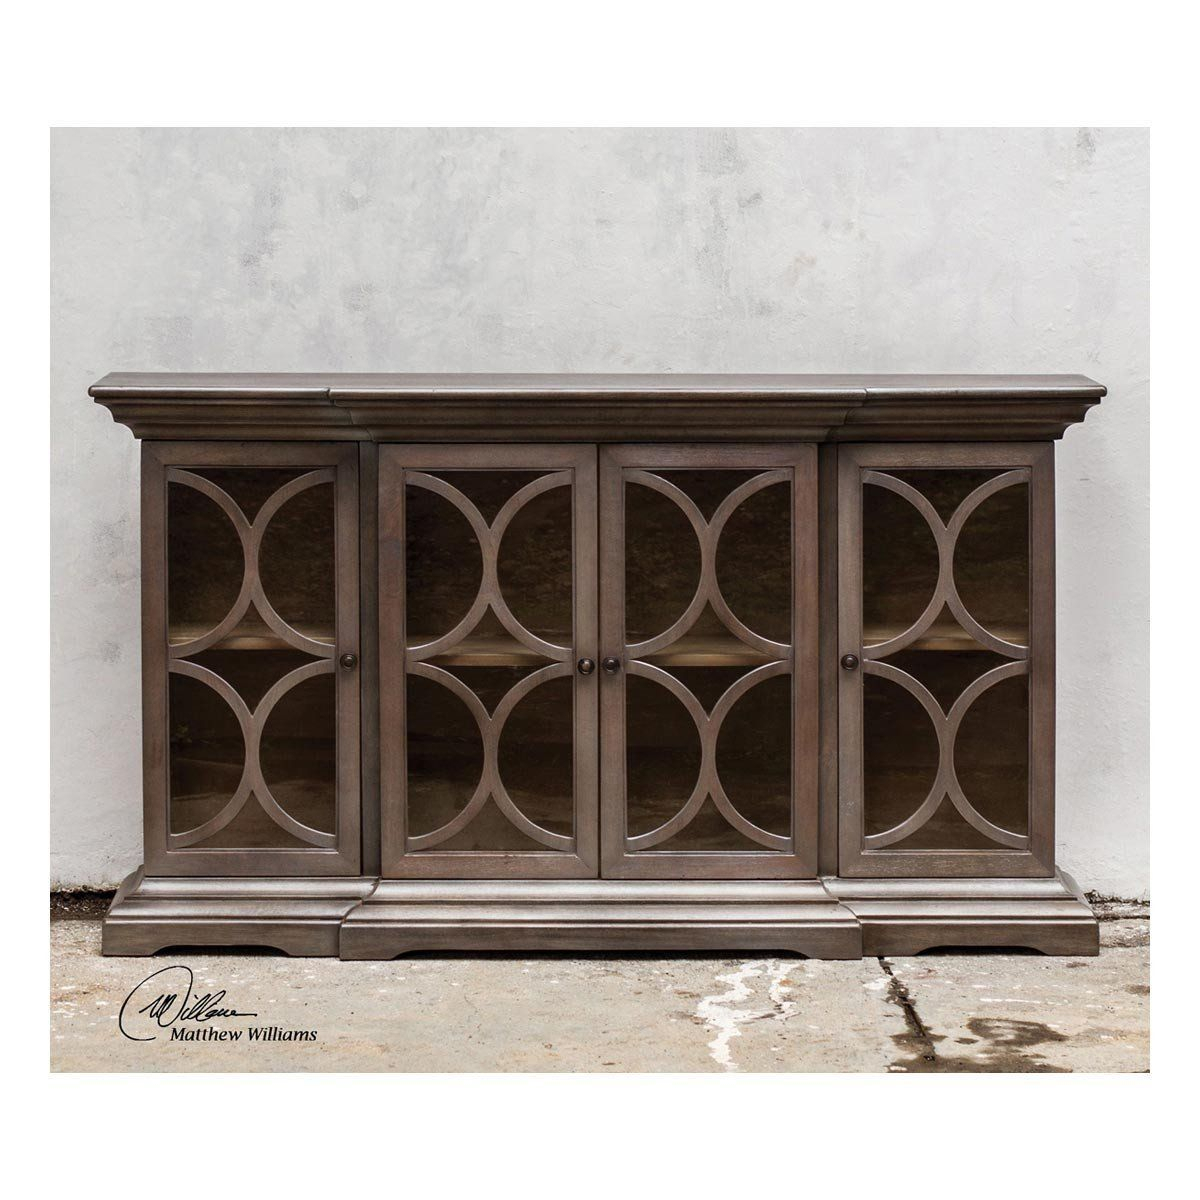 Utt Bellino 25629 2 | Diggs & Dwellings – Buffets With Regard To Most Up To Date Joyner Sideboards (View 17 of 20)